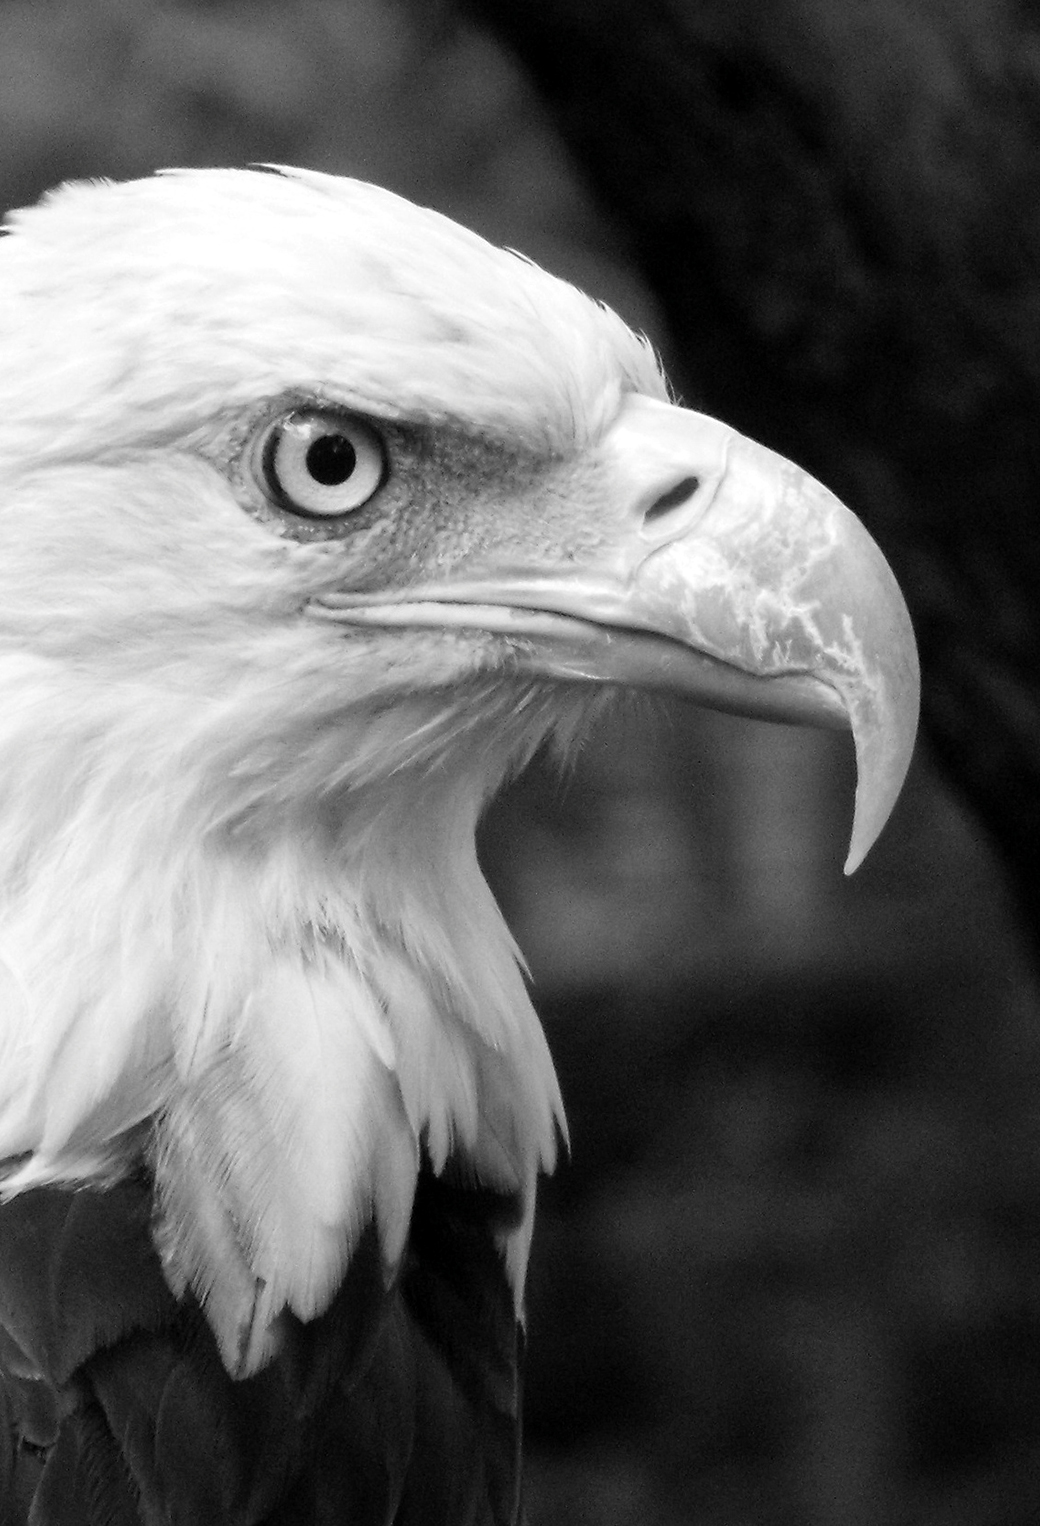 Girl Black And Gray Wallpaper Black Amp White Eagle Wallpaper For Iphone X 8 7 6 Free